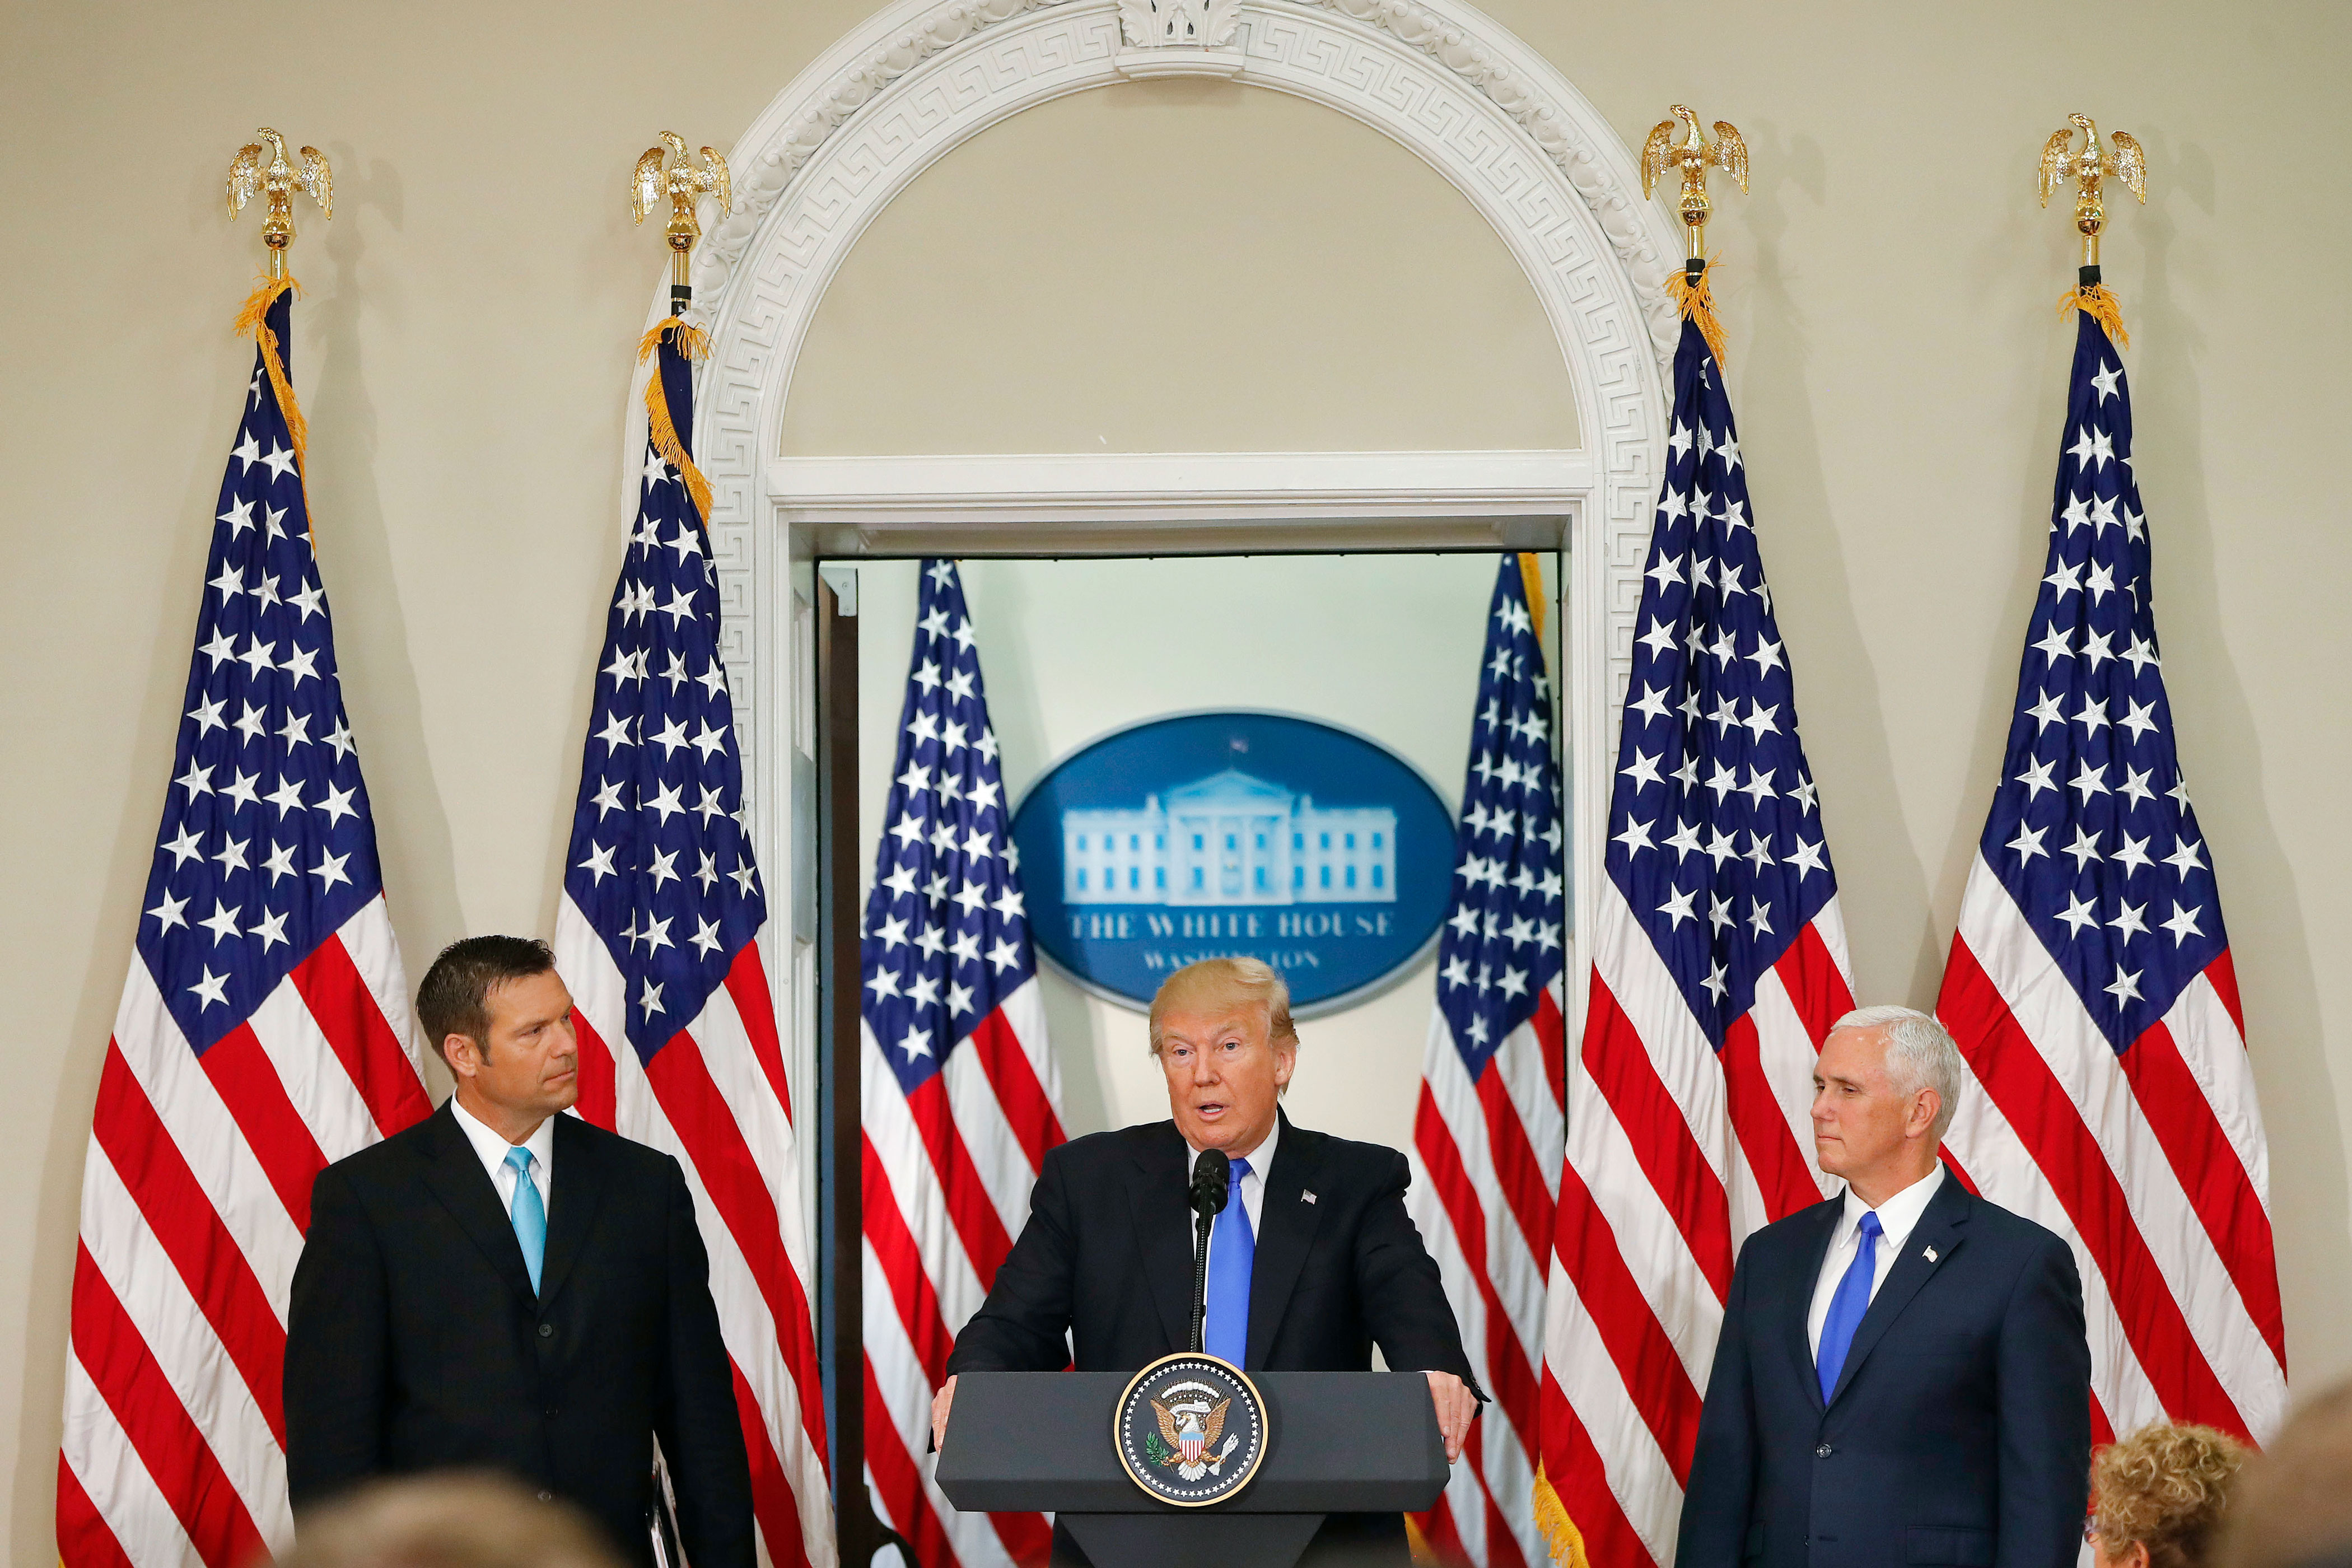 Photo: Presidential Election Integrity Commission Meeting | Kobach, Trump, Pence - AP